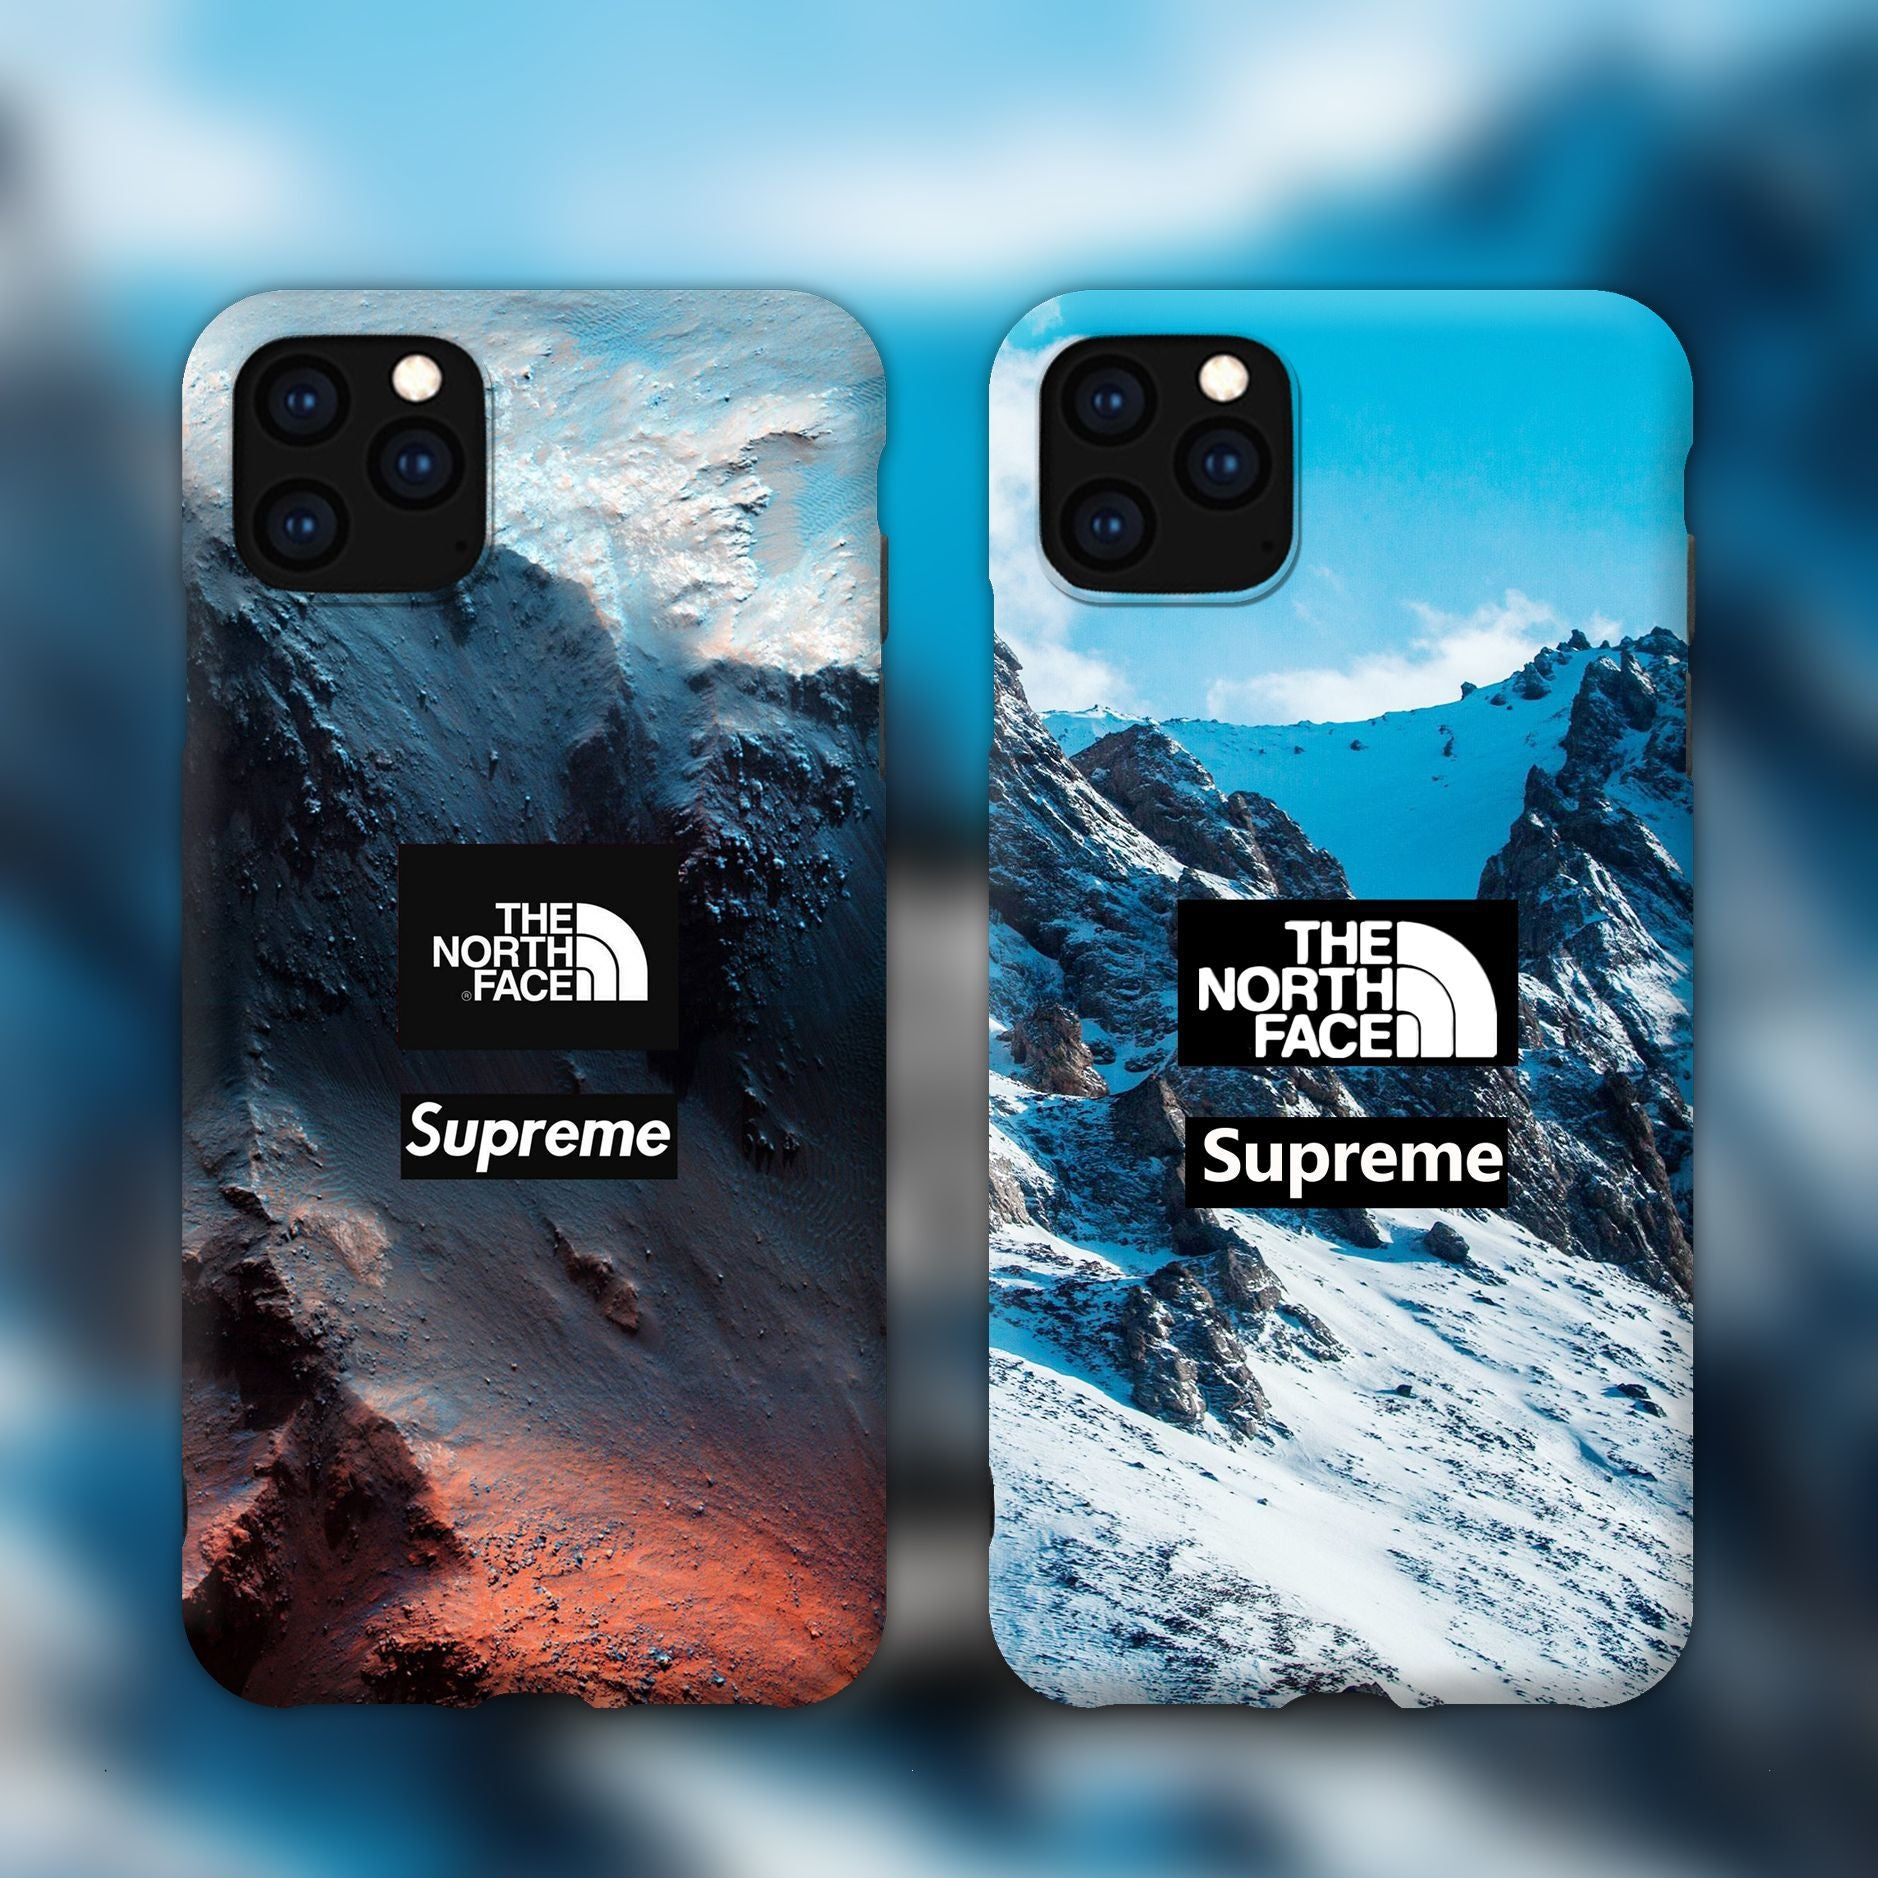 The North Face X Supreme iPhone 11 Pro Max Case -  - TomorrowSummer